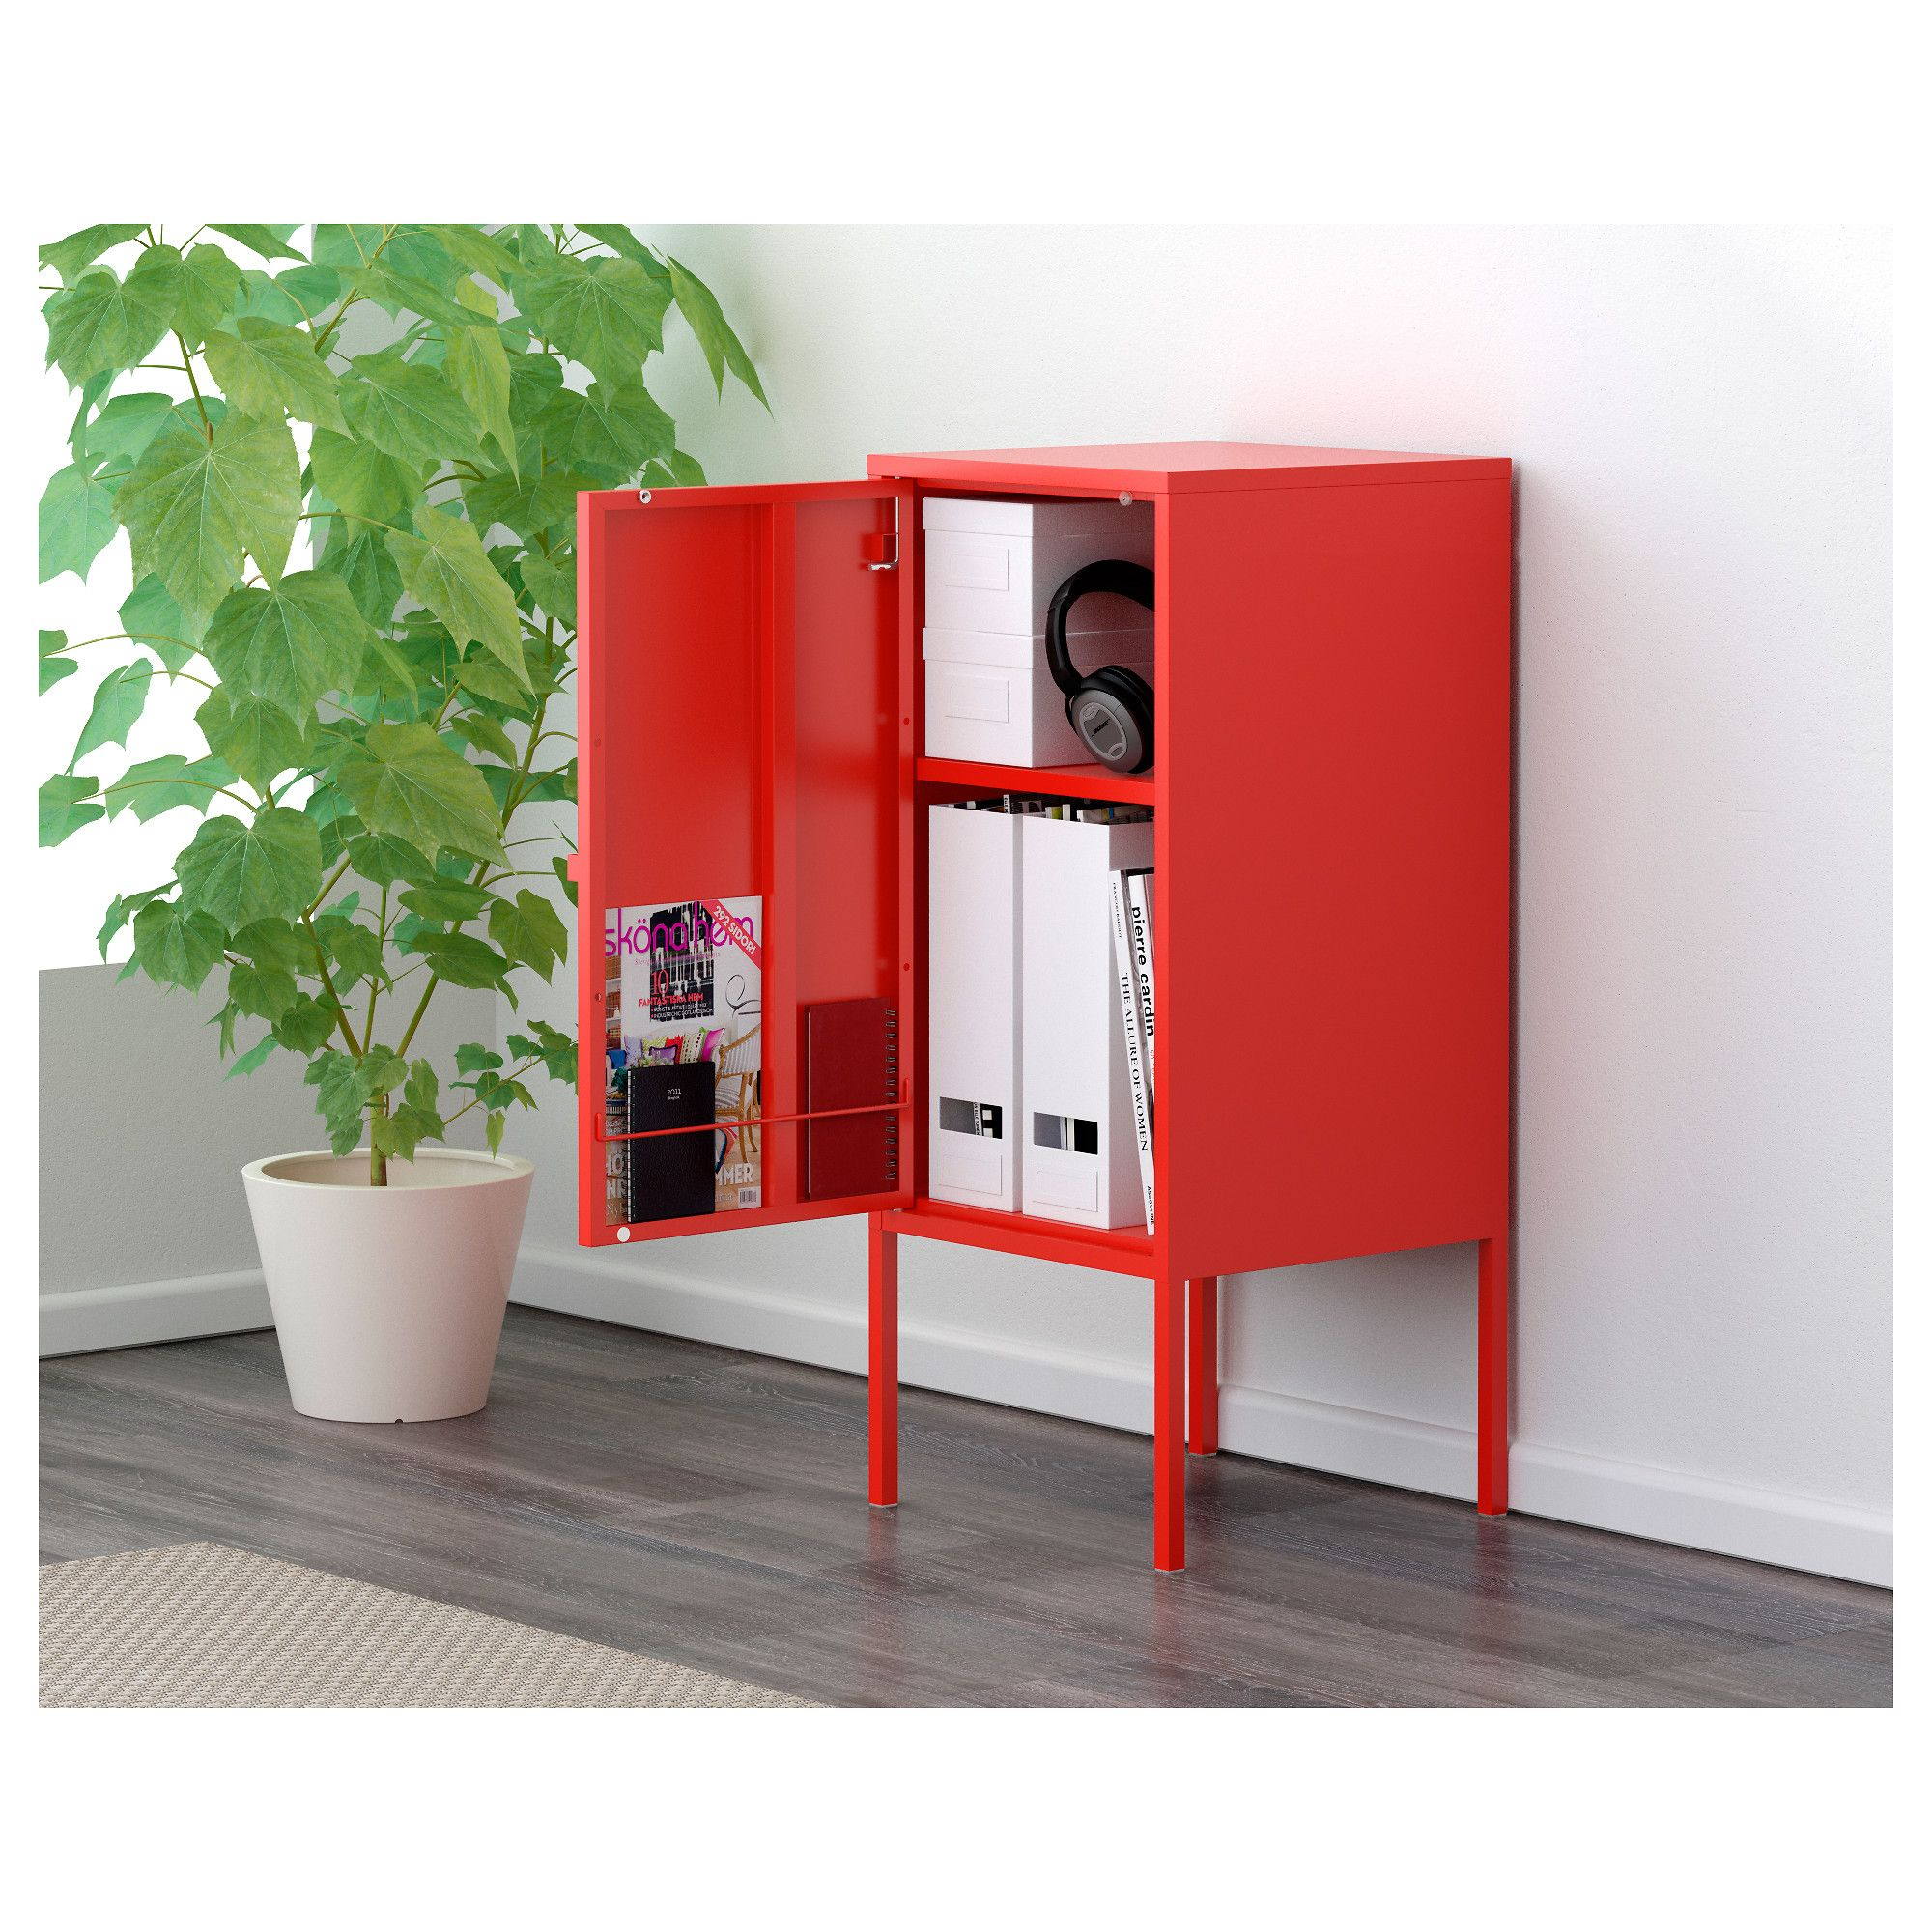 Lixhult Cabinet Metal Red Ikea - Lixhult Cabinet Metal, Red In 2019 | Products